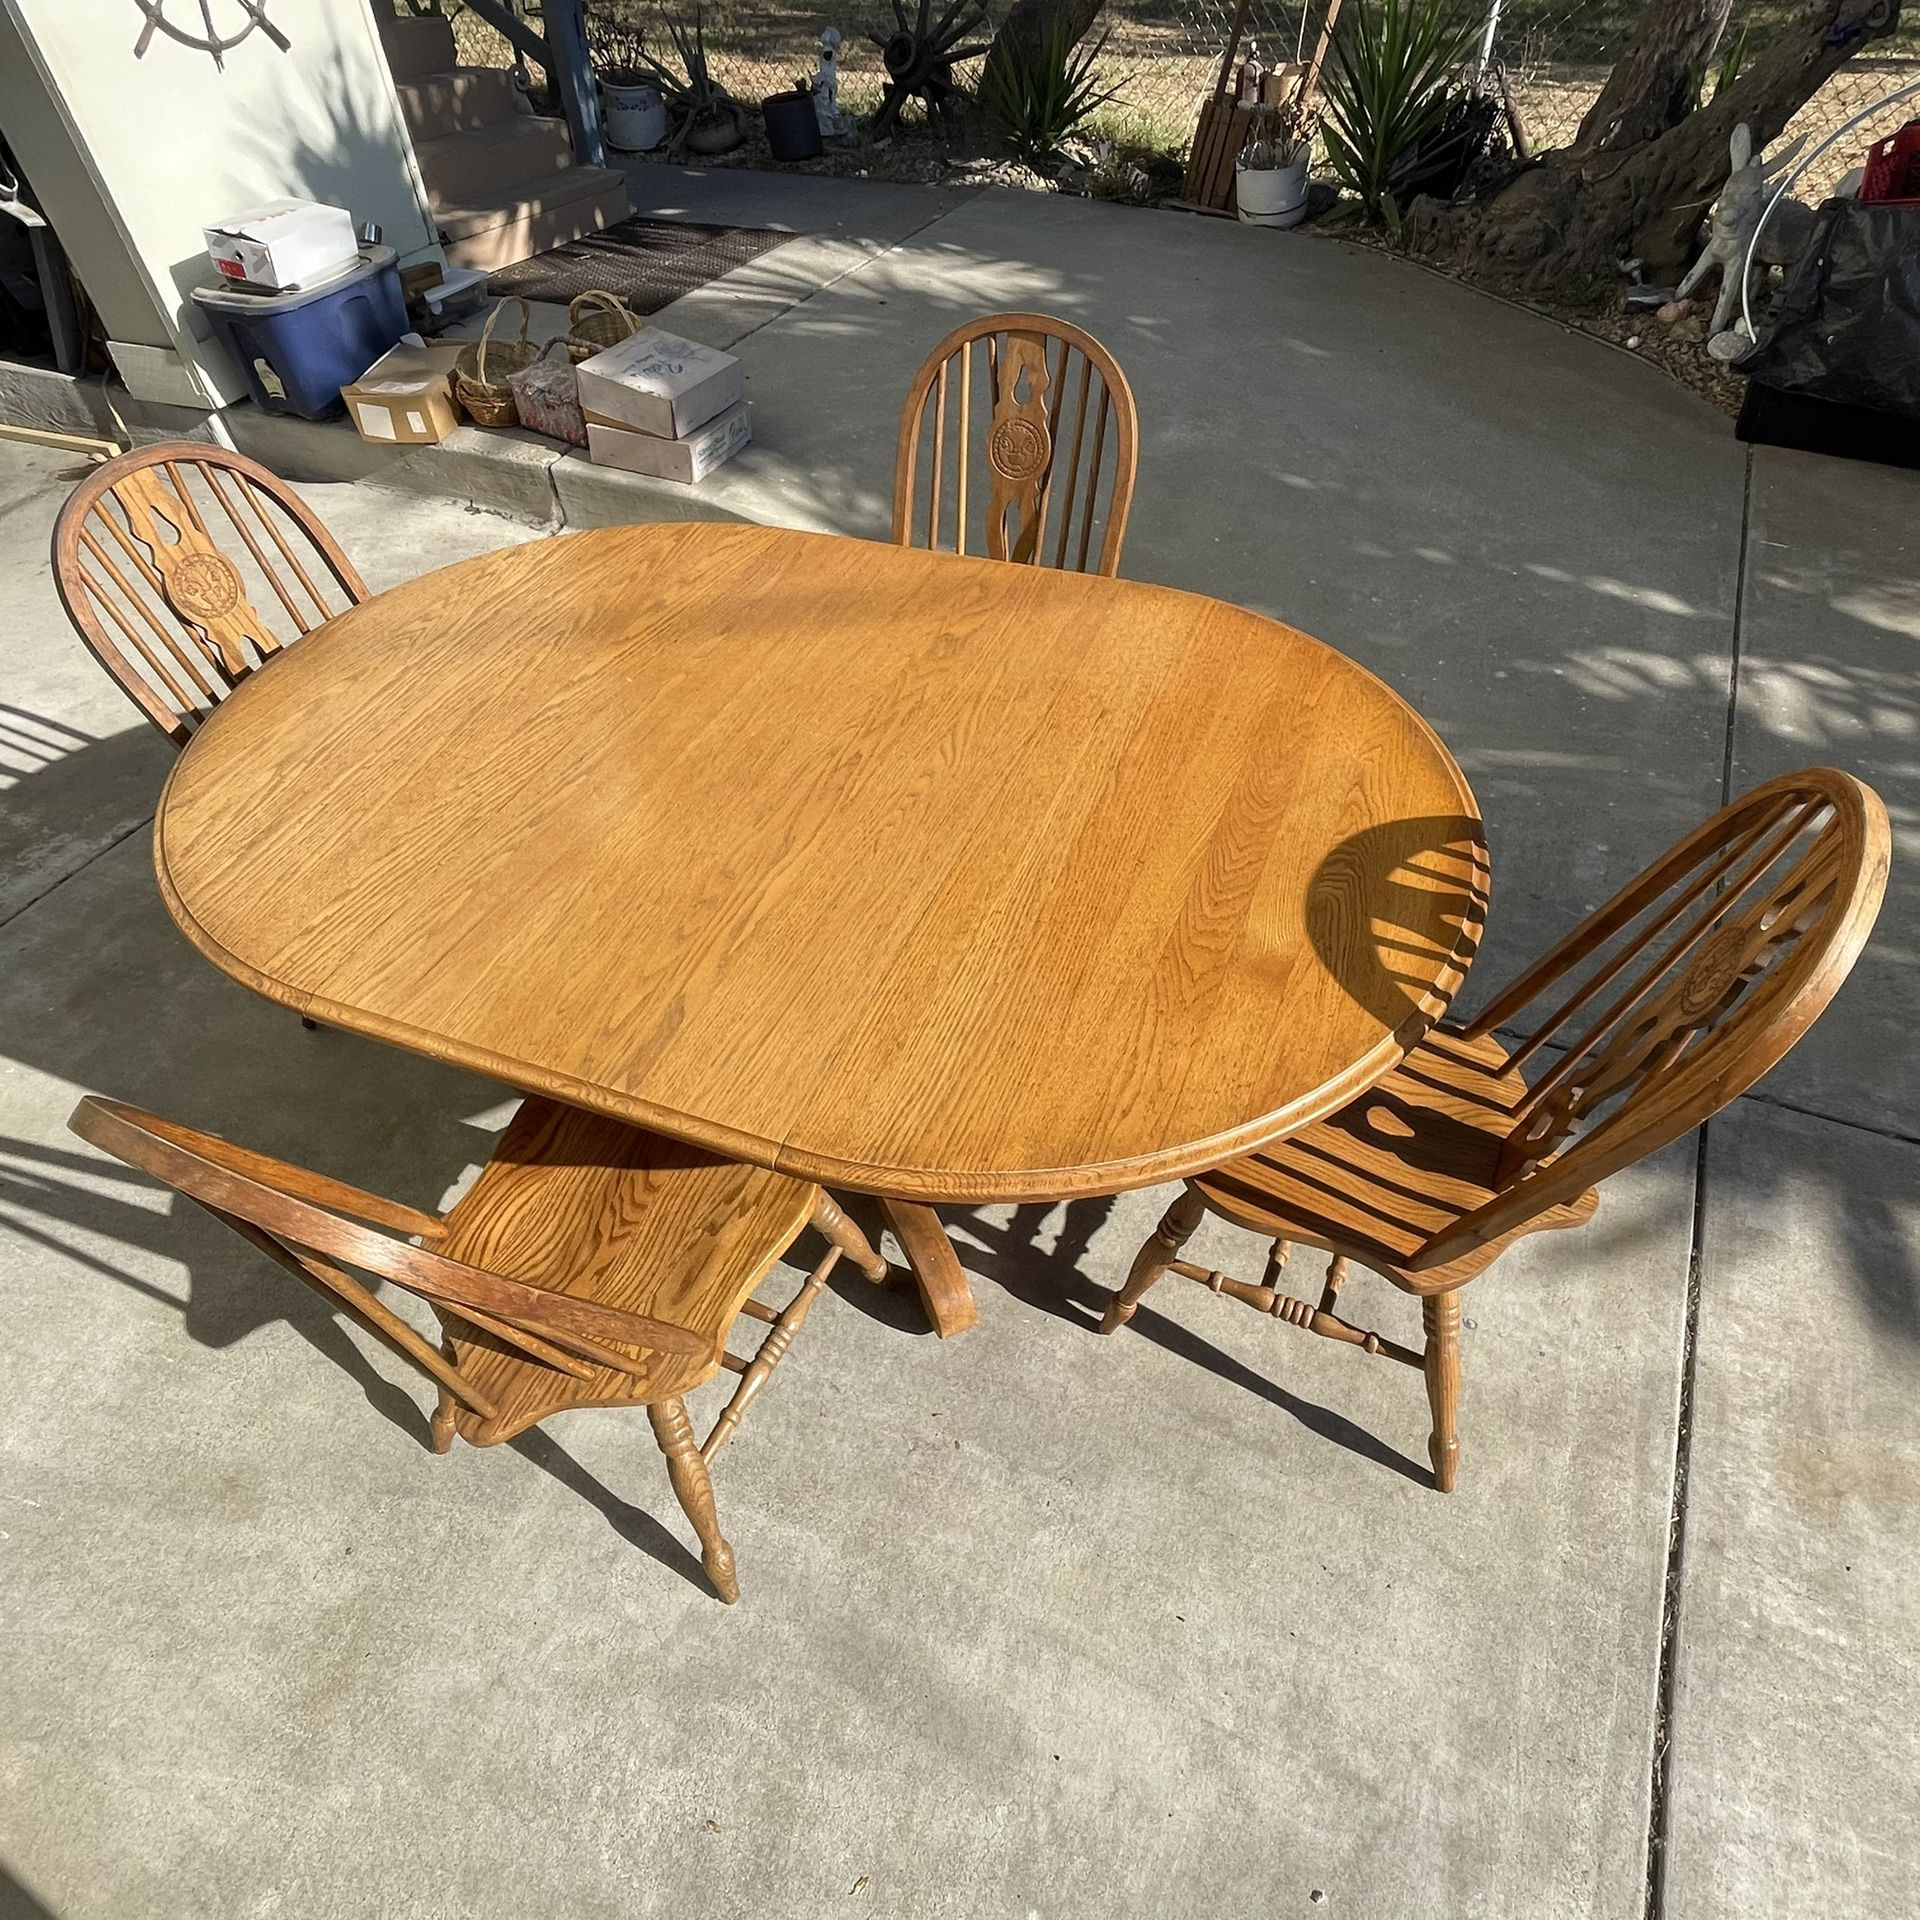 Wood Table with Leaf and 4 Chairs